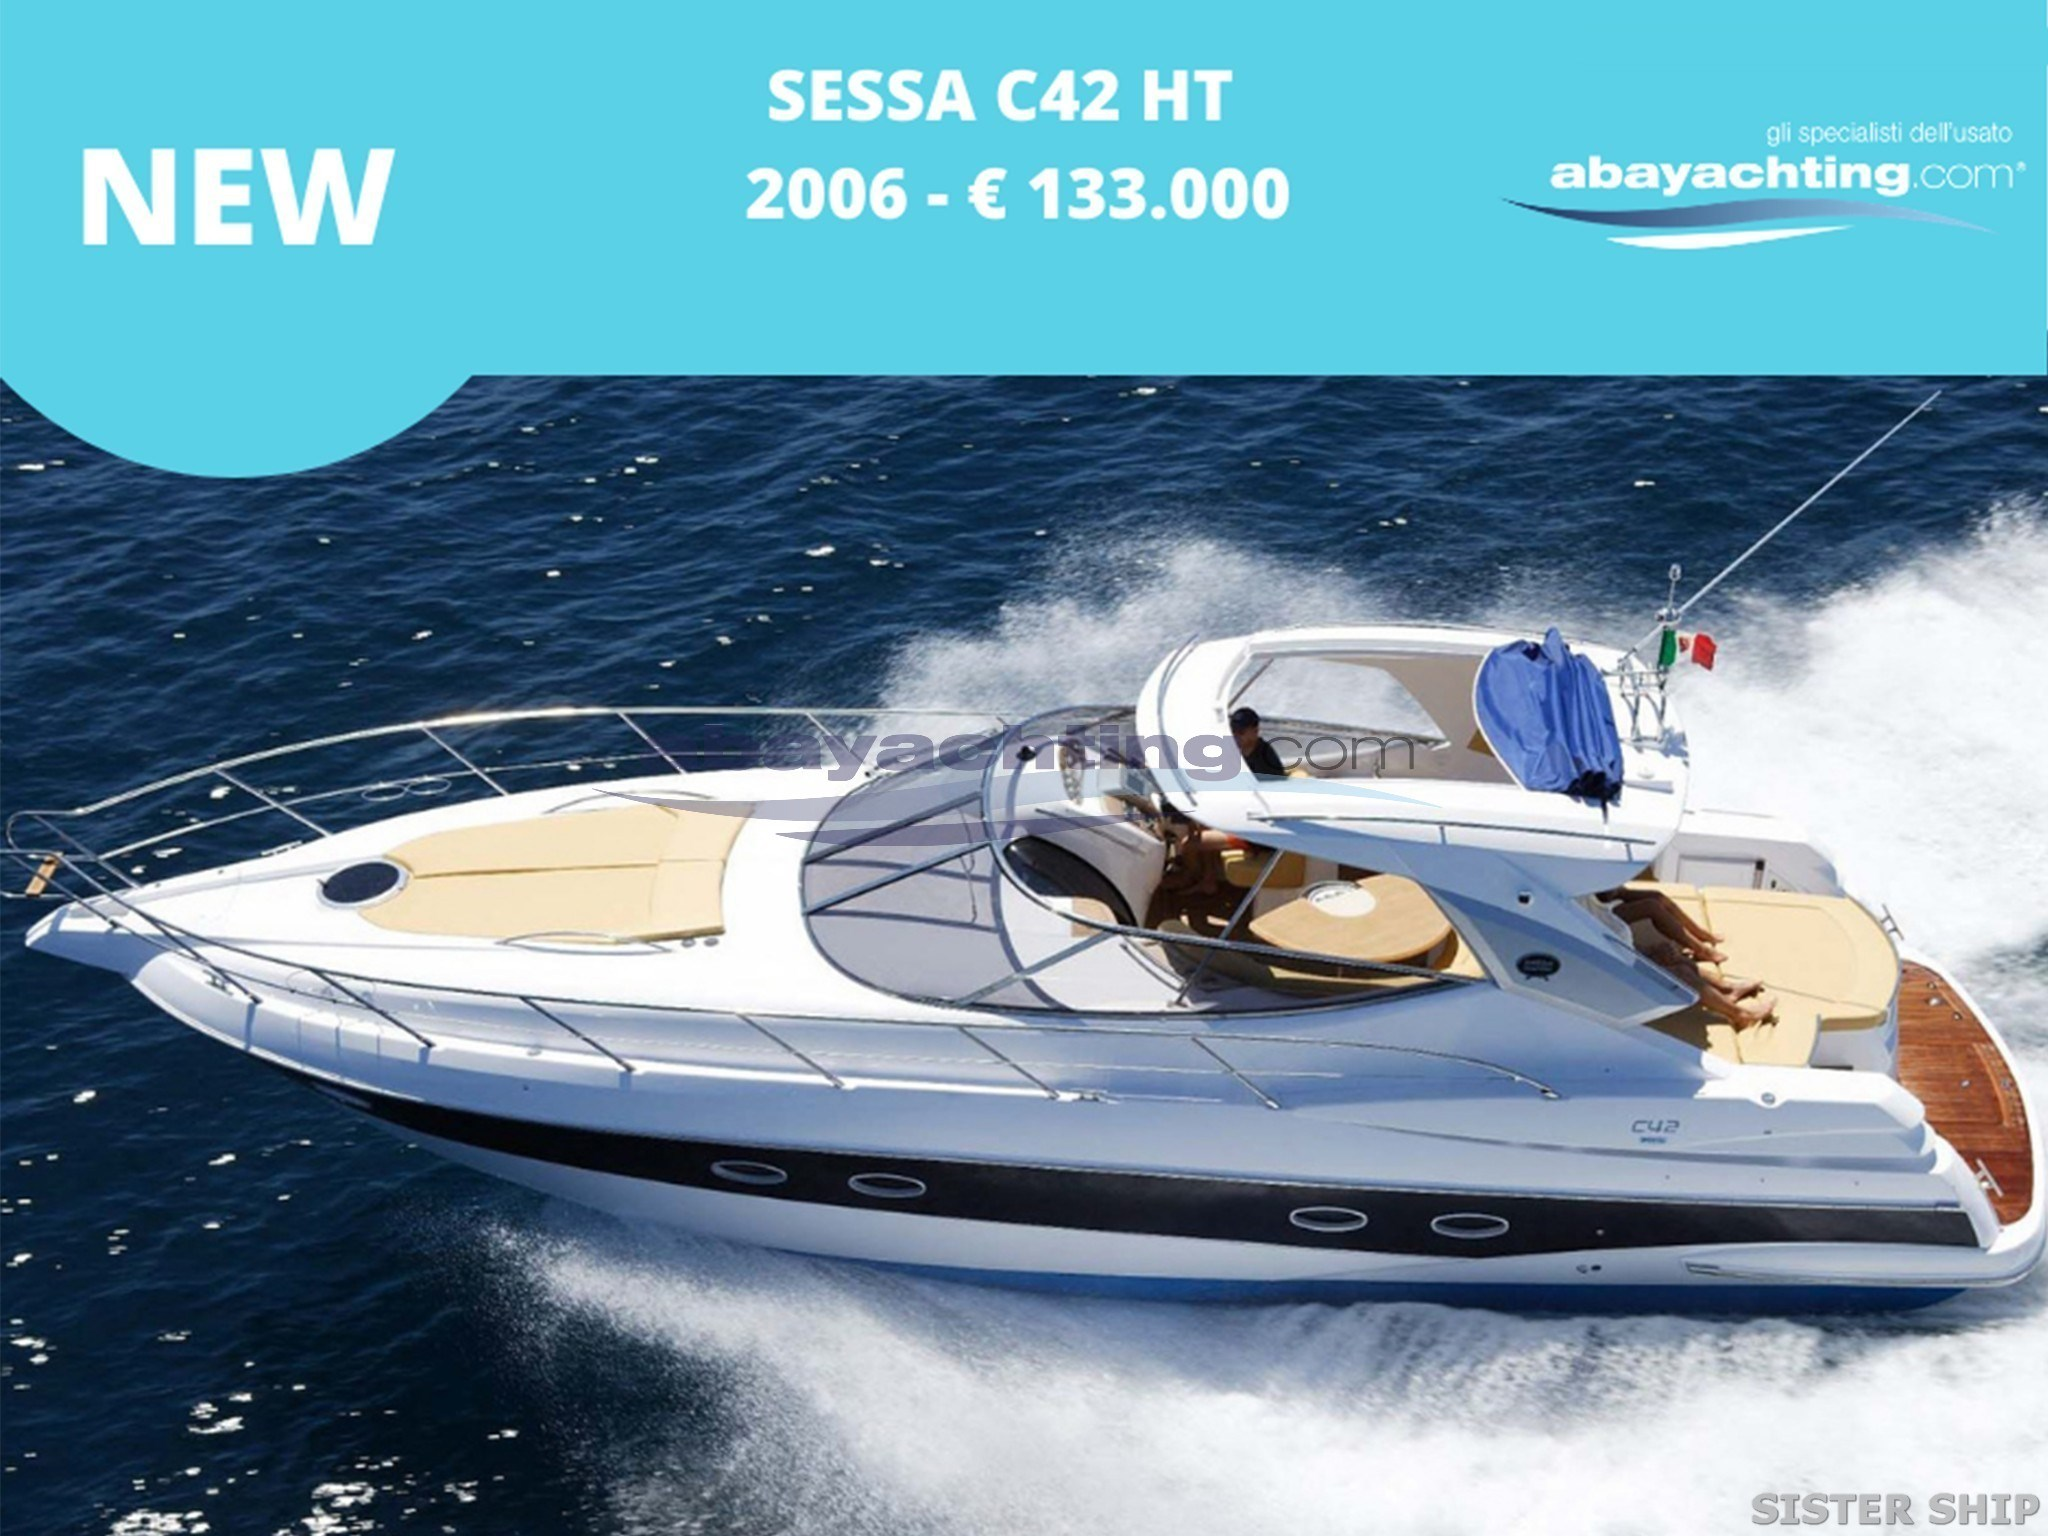 New arrival Sessa C 42 HT